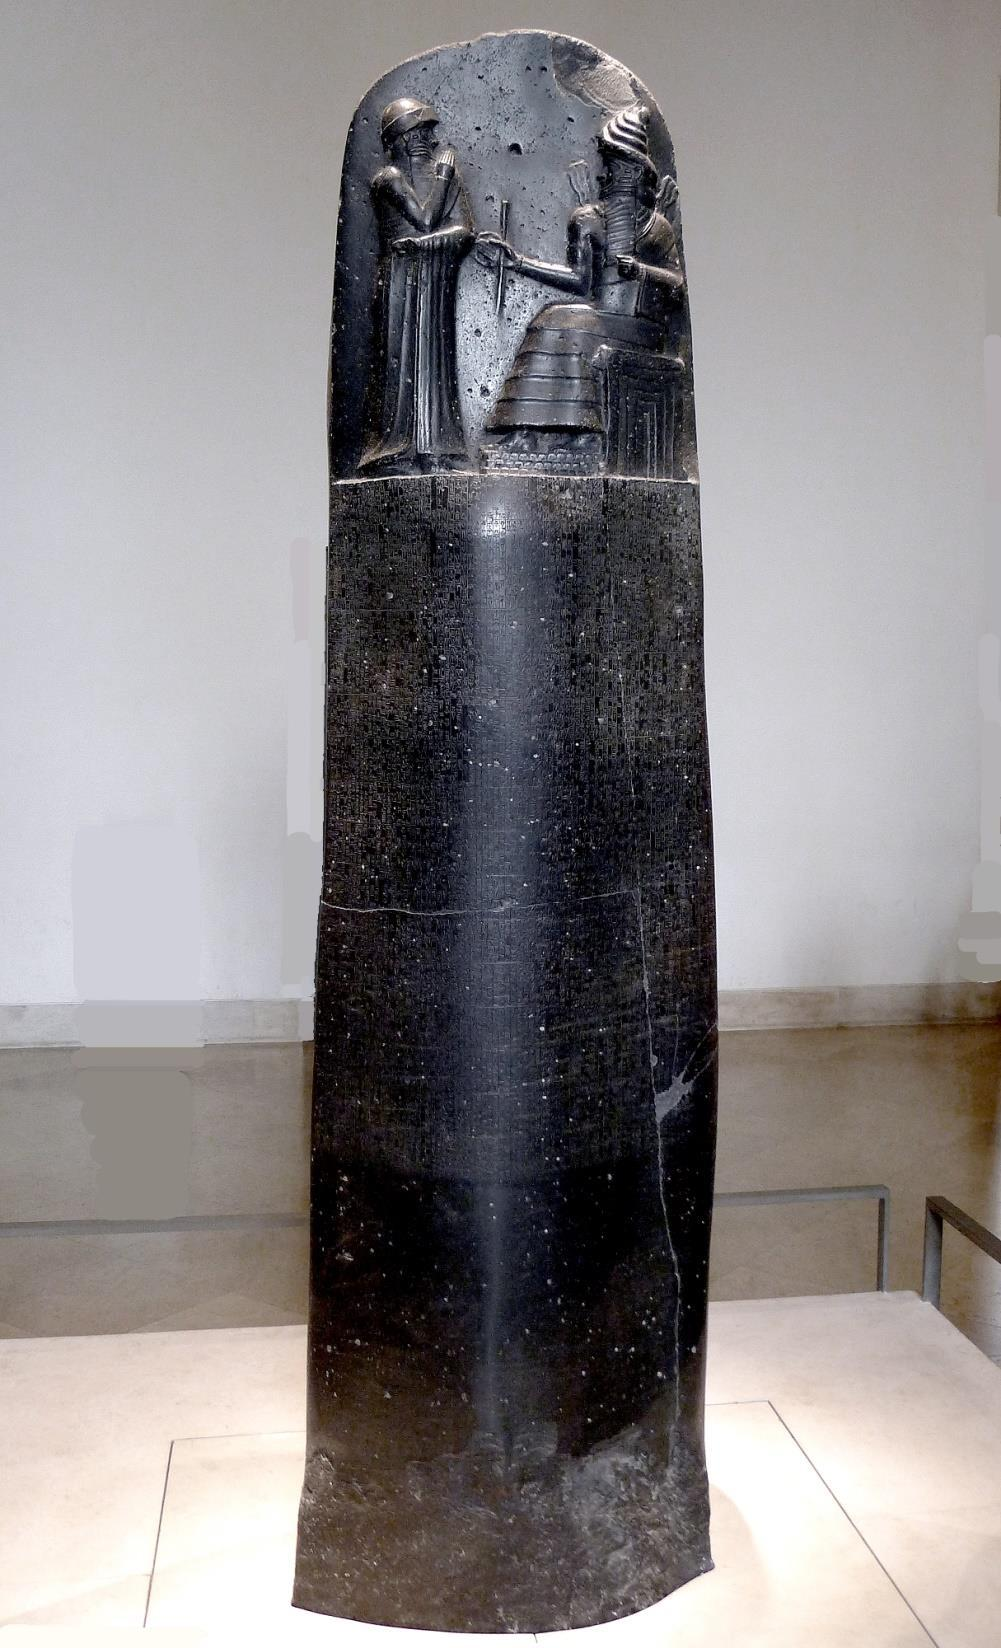 His horned helmet usually was reserved for the gods. The Akkadians adopted the Sumerian style in their stele. One of the most famous stele is Hammurabi s Law Code.